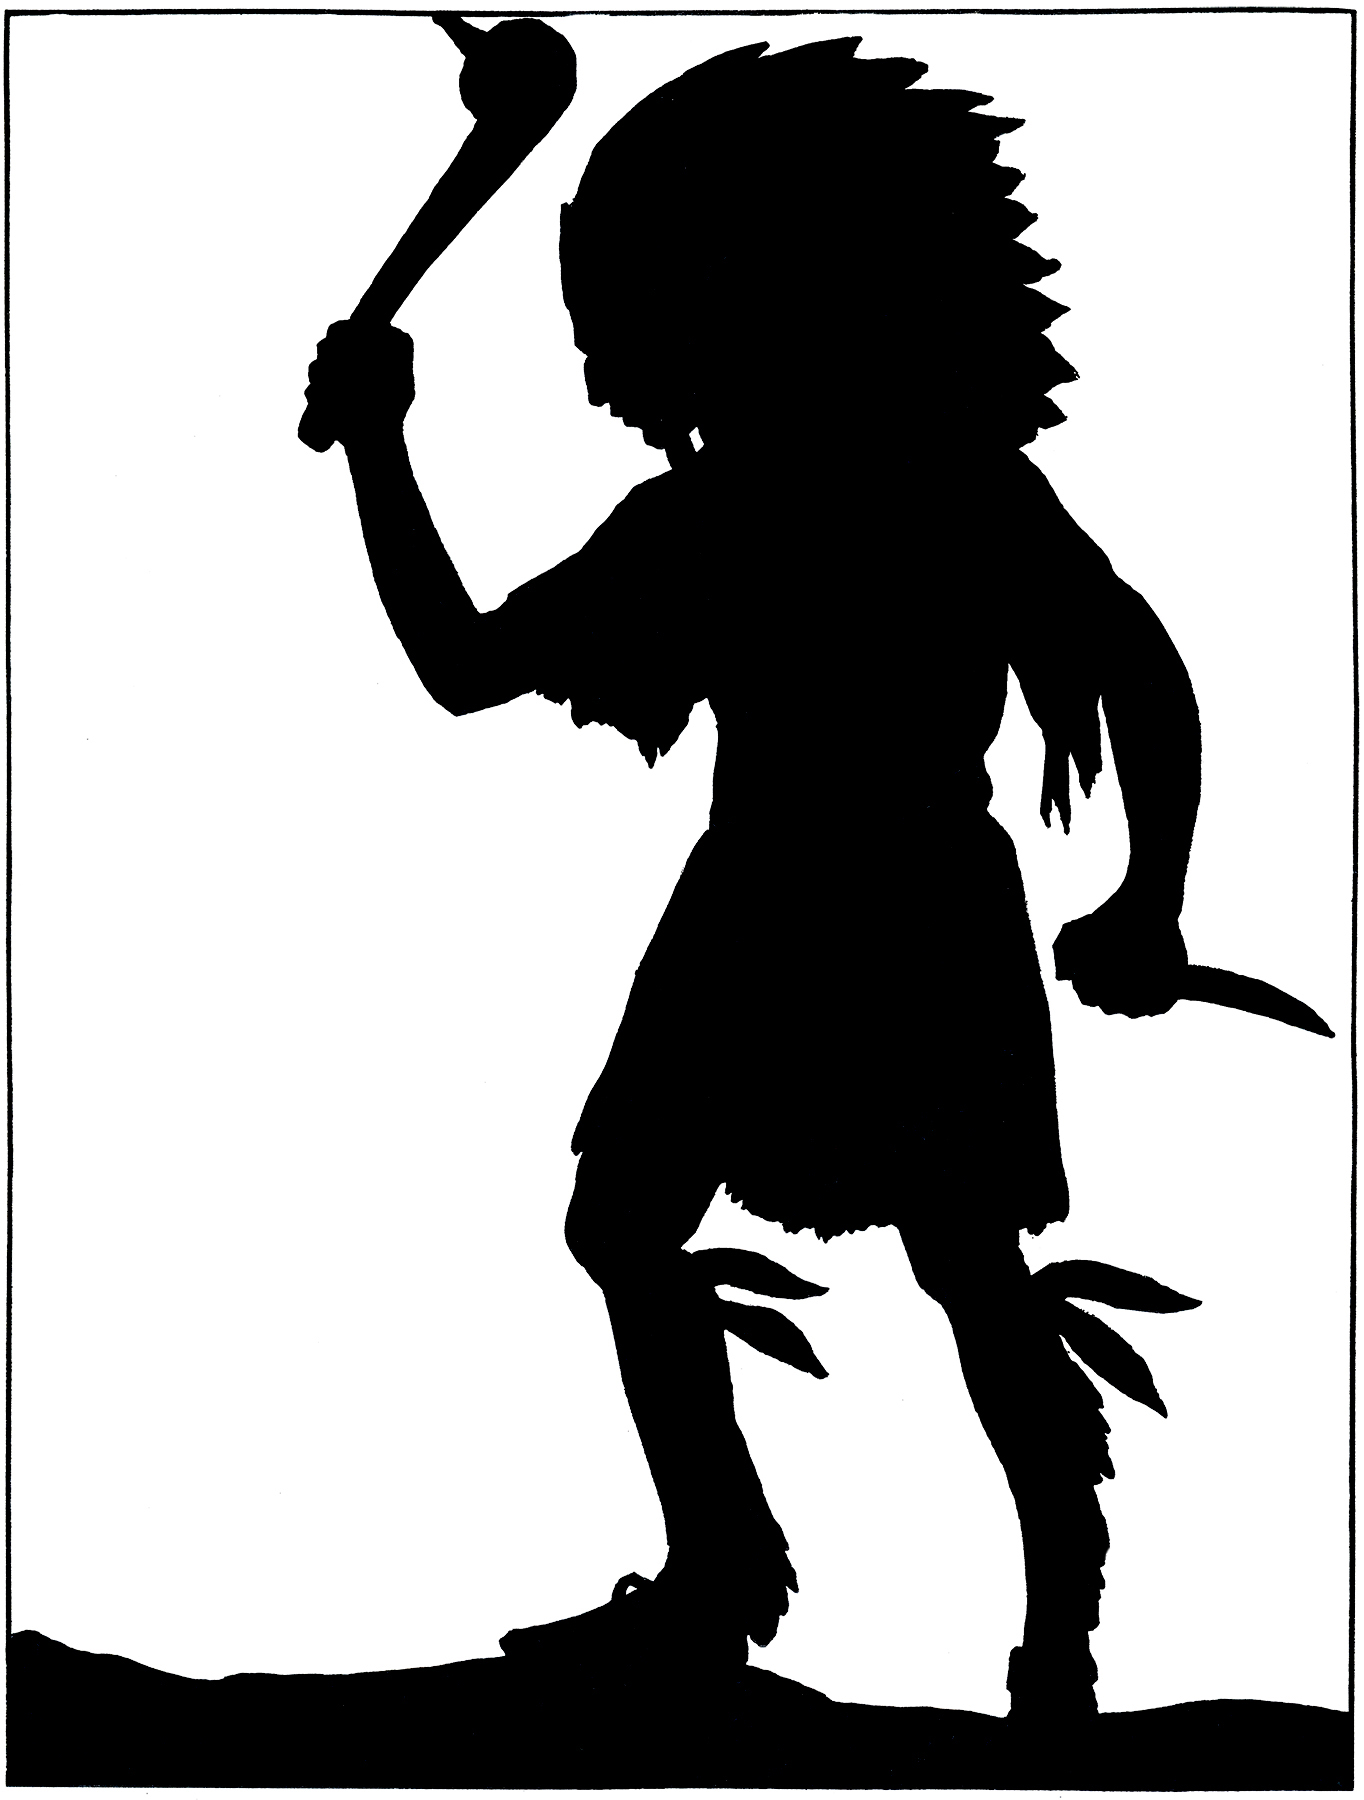 Indians clipart silhouette. American indian at getdrawings